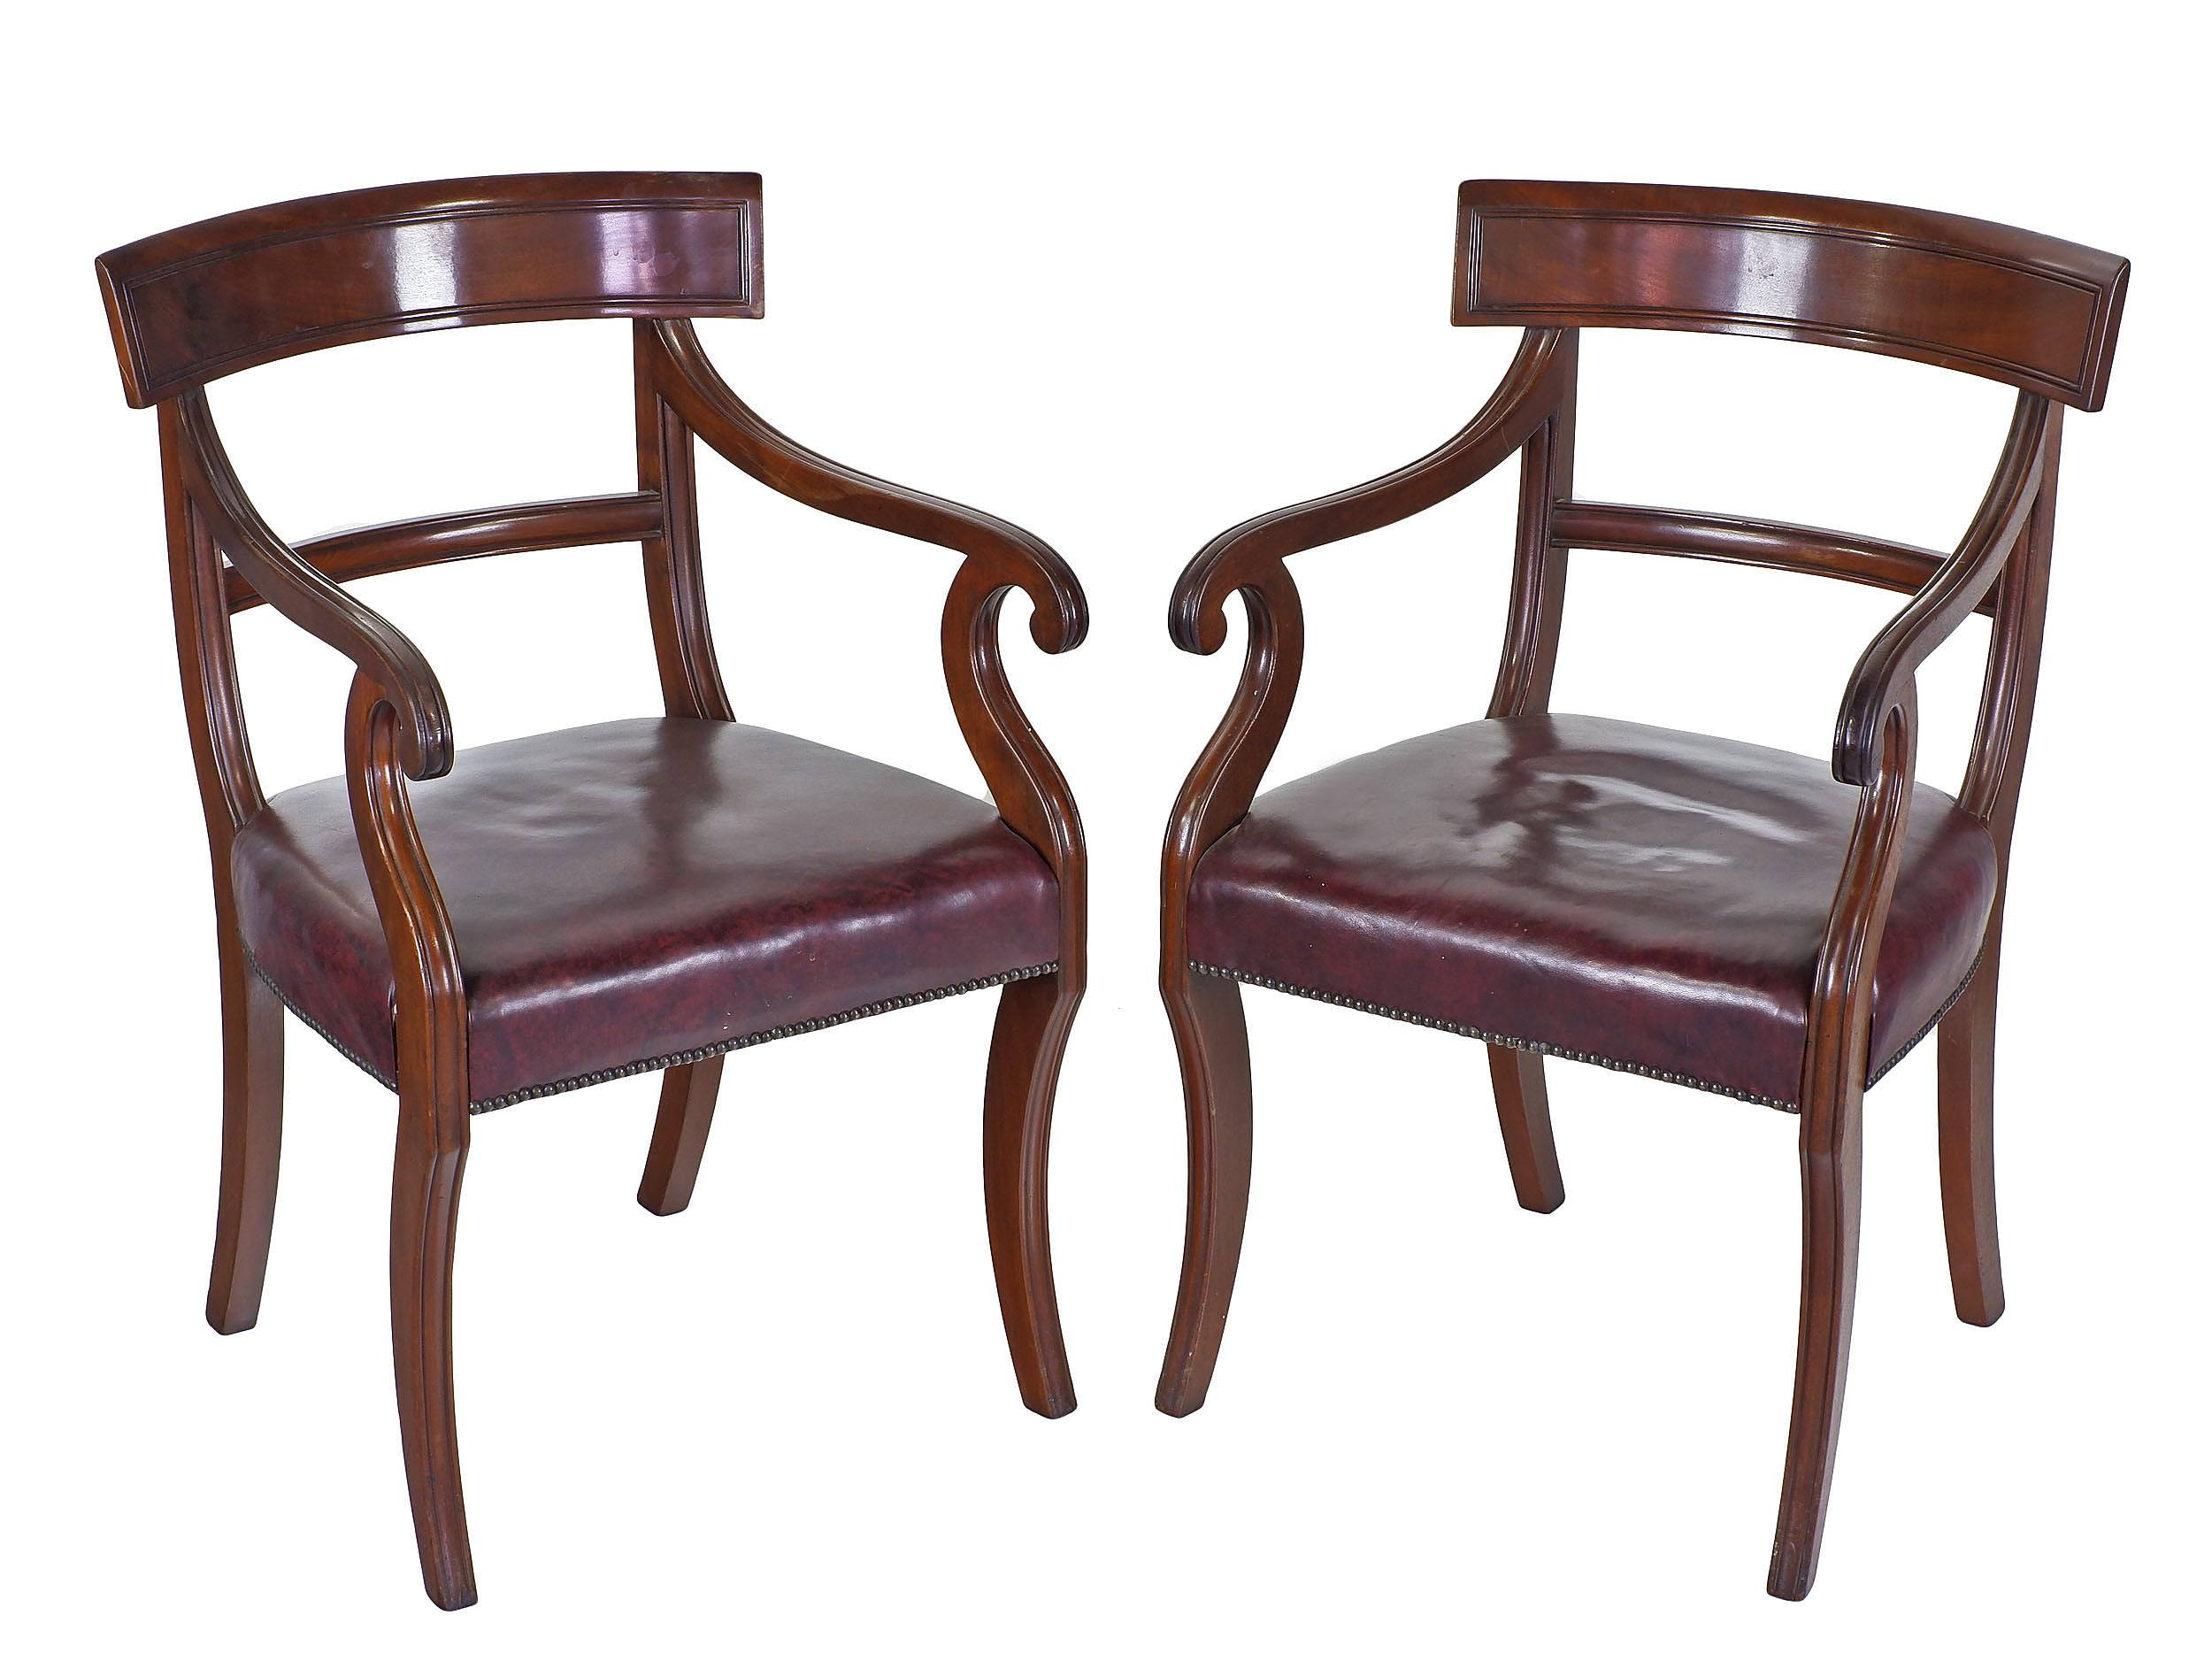 'Pair of Regency Mahogany Arm Chairs with Sabre Legs and Scrolled Arms 19th Century'